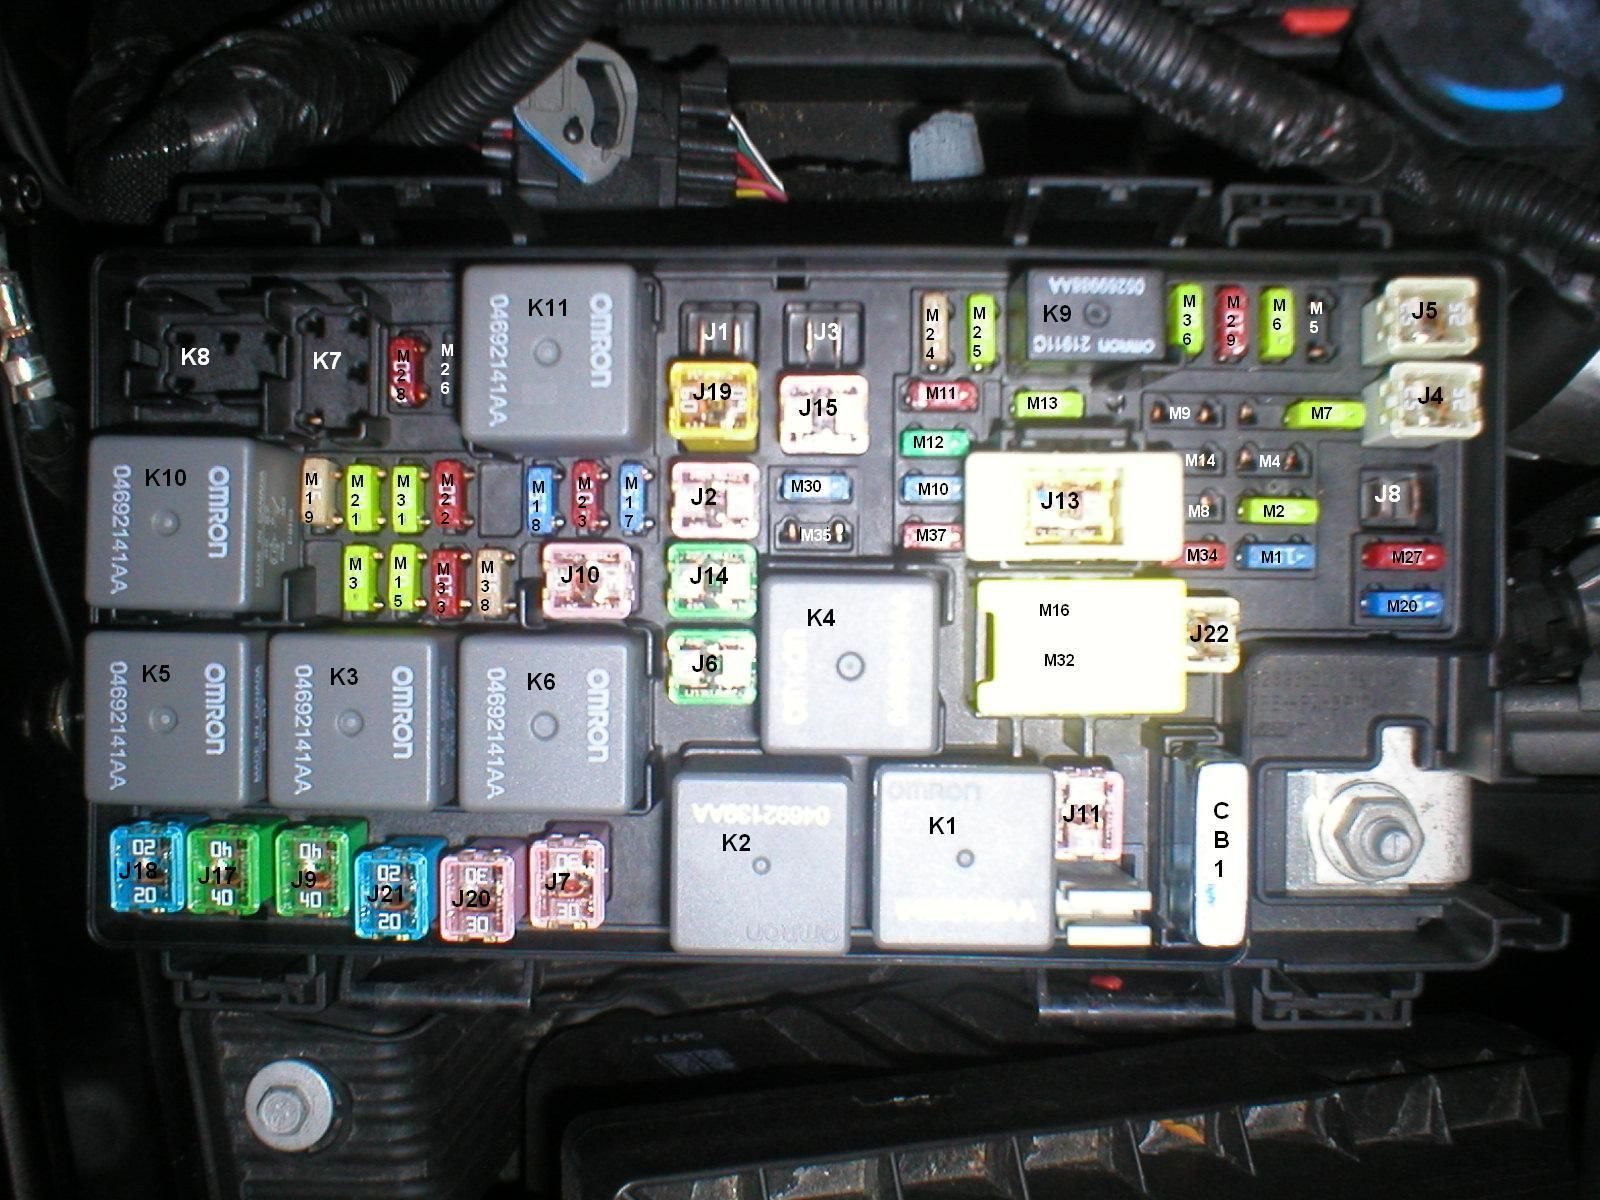 jeep jk fuse box map layout diagram jeepforum com just empty rh pinterest com 2007 jeep patriot fuse box location 2007 jeep compass fuse box layout